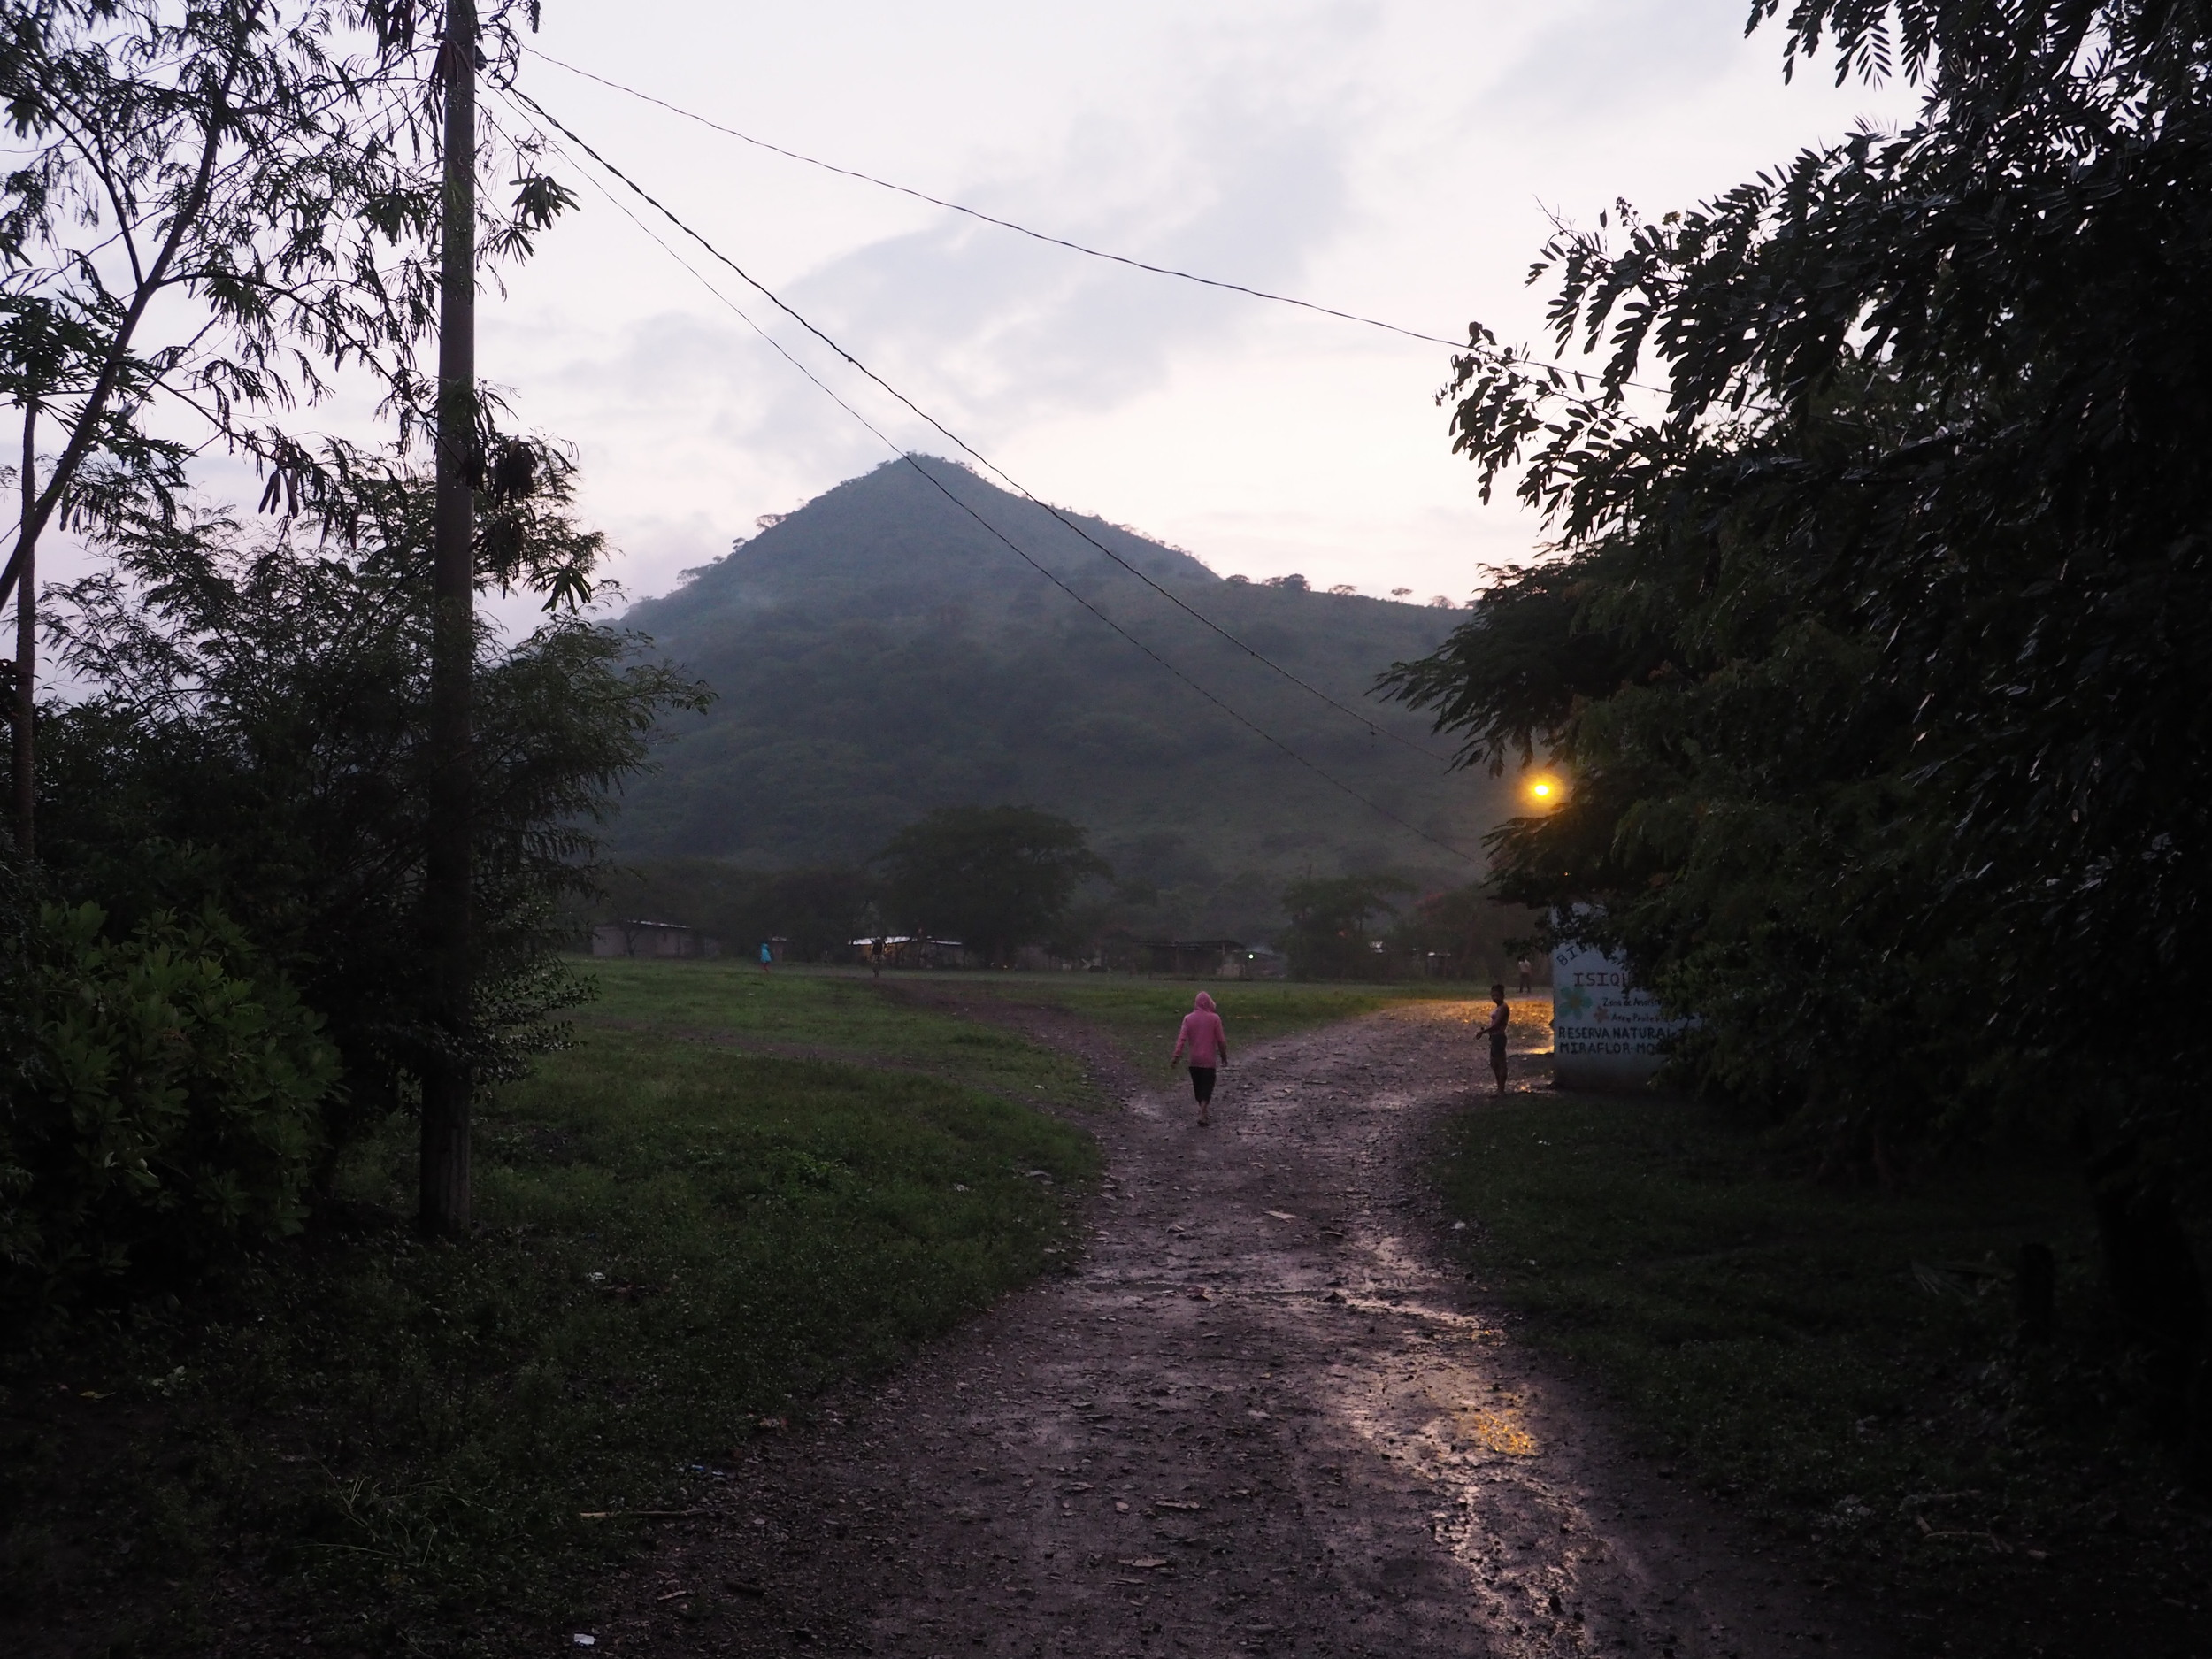 Isiquí after the rain.